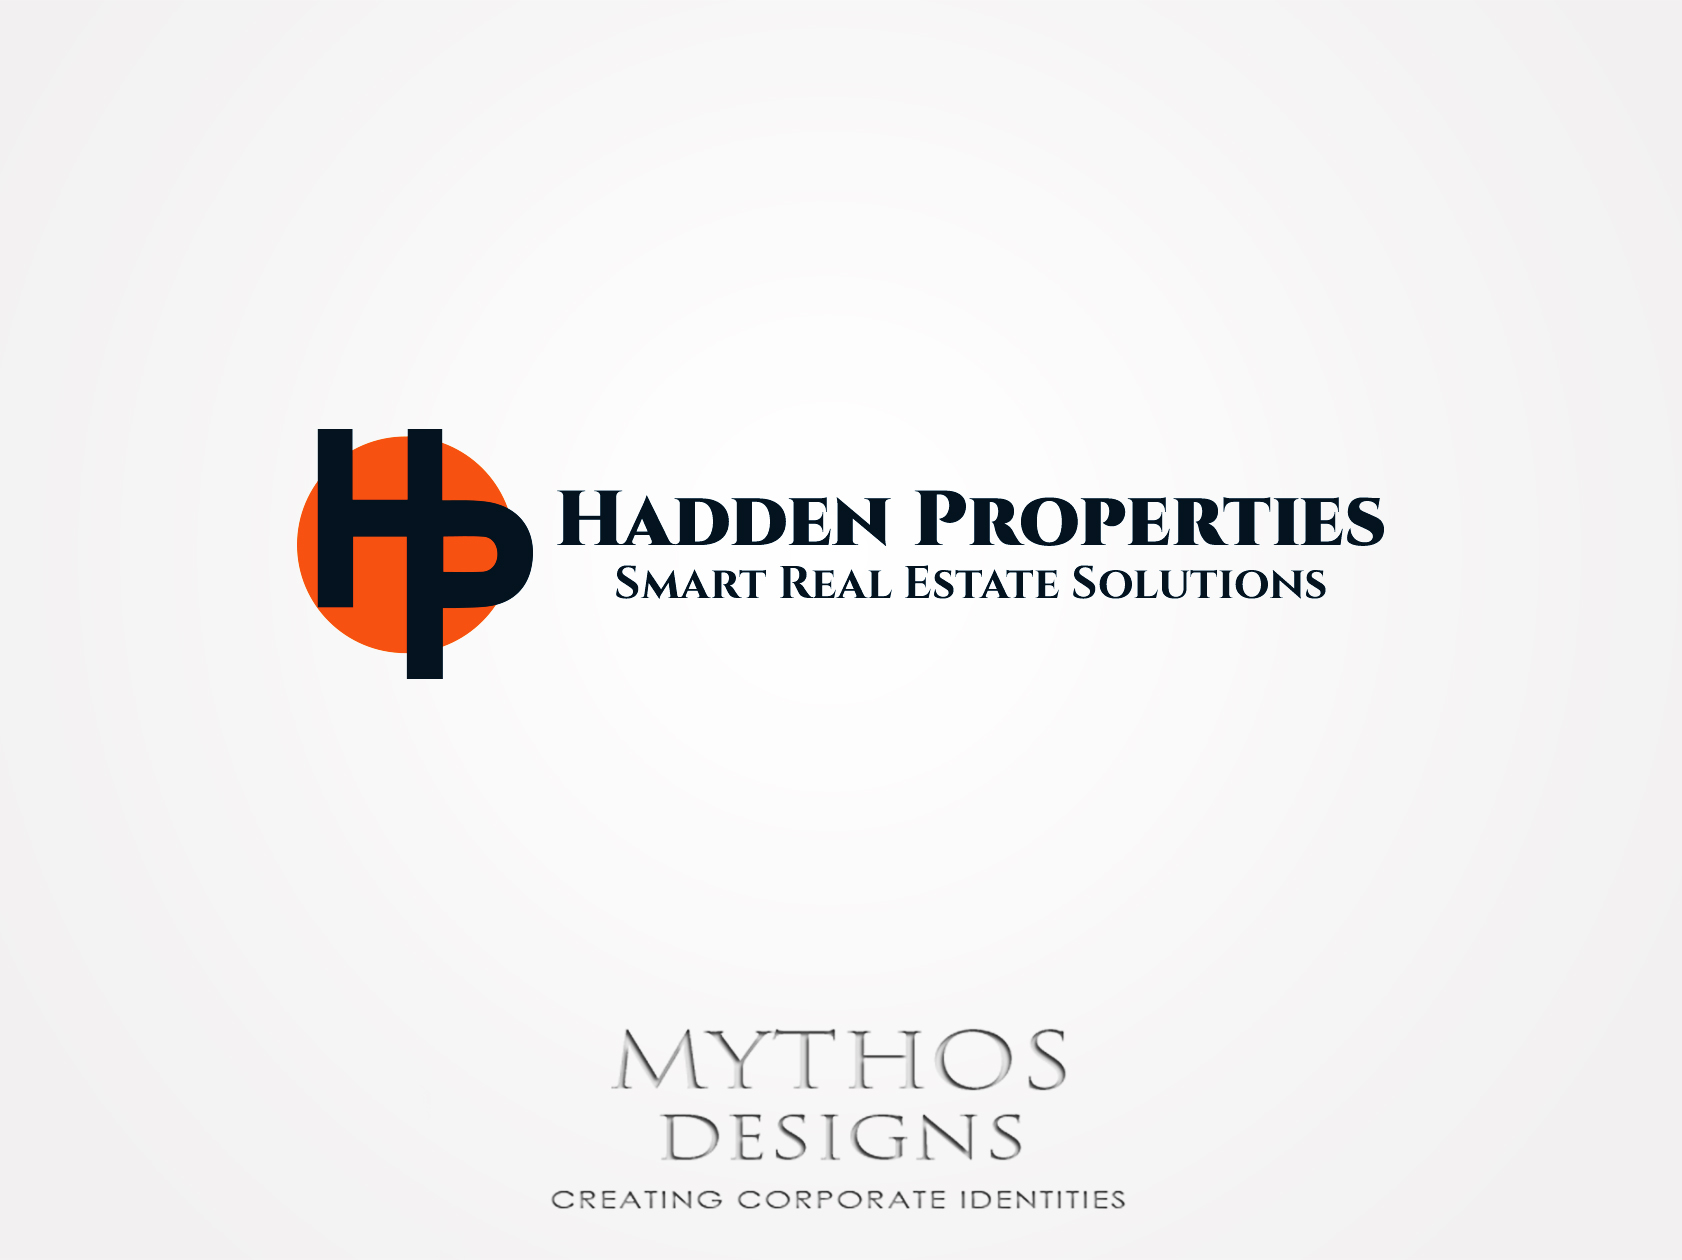 Logo Design by Mythos Designs - Entry No. 68 in the Logo Design Contest Artistic Logo Design for Hadden Properties.